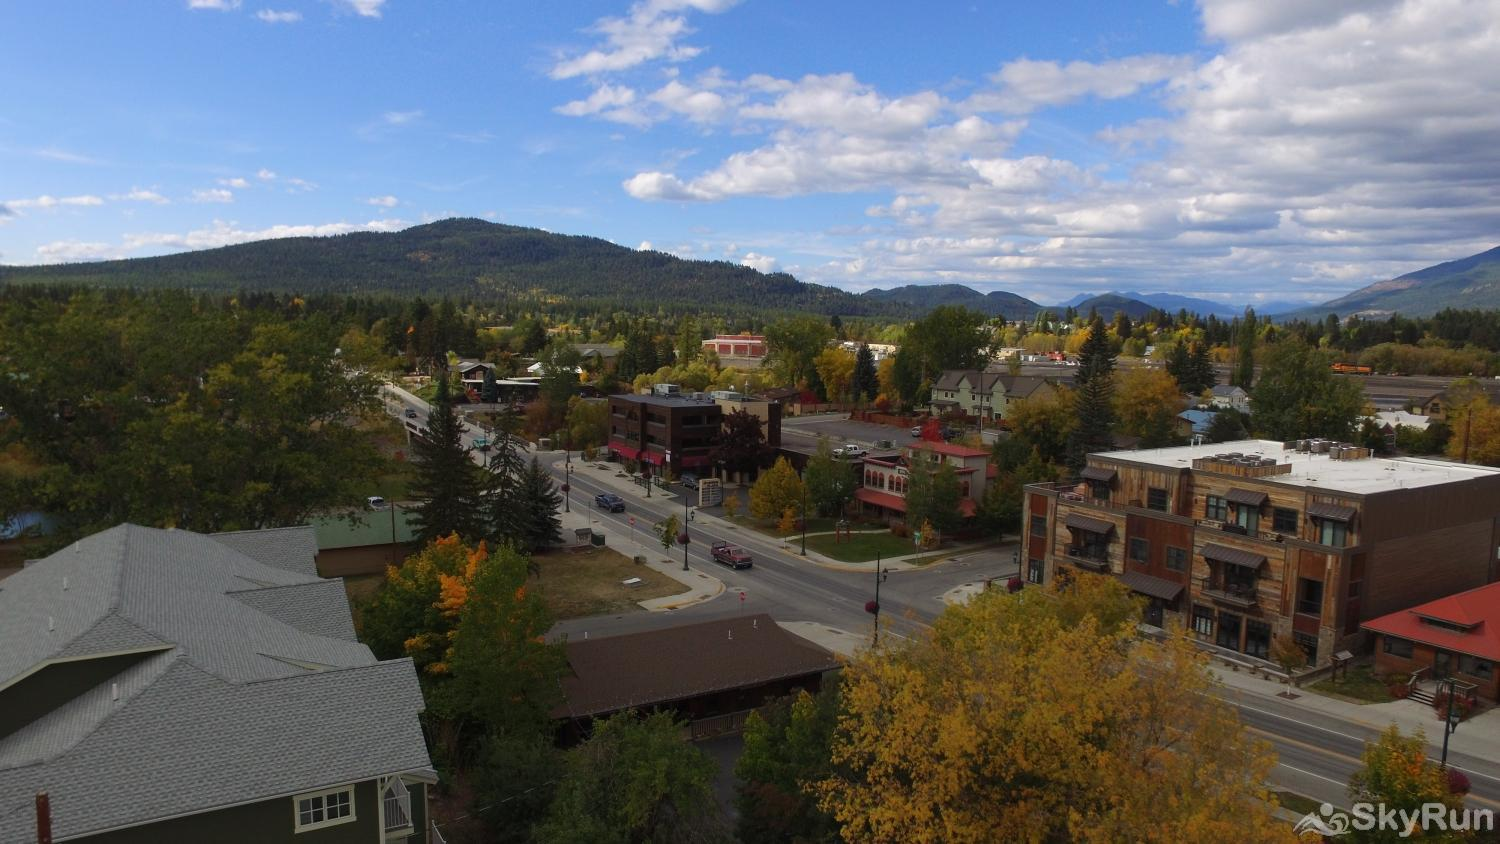 Red Fox Hollow Aerial view of downtown Whitefish looking out toward the golf course and Red Fox Hollow